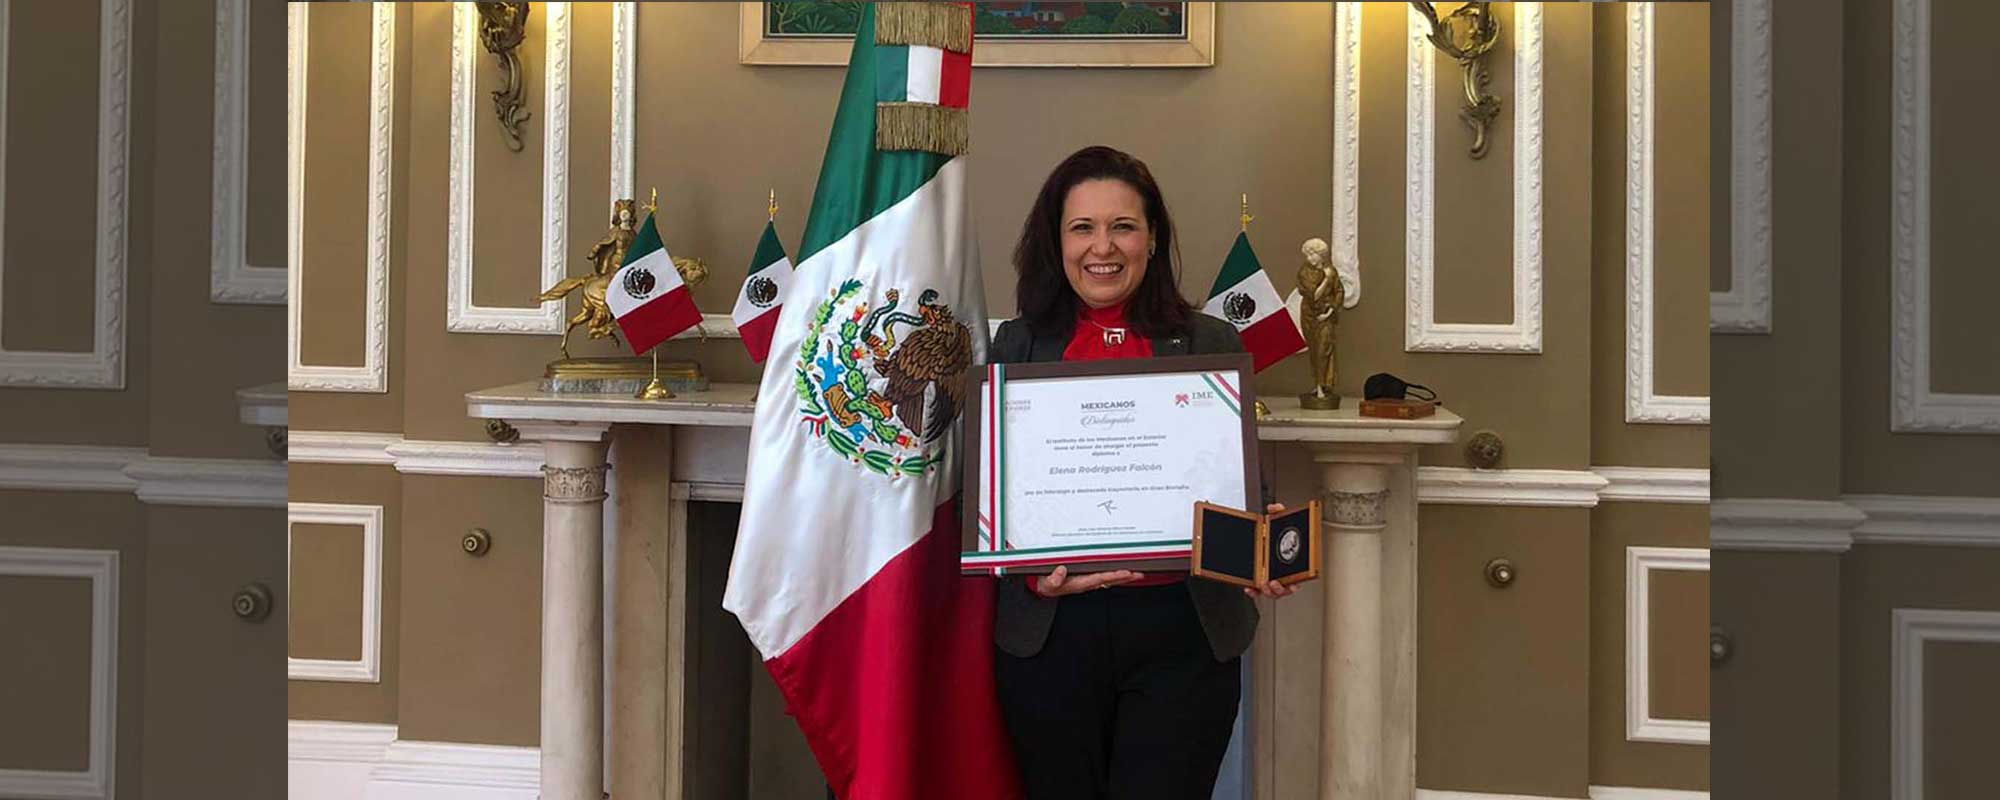 Elena Rodríguez is a graduate of the Universidad Autonoma de Nuevo Leon and an active member of the International Advisory Board of our institution.